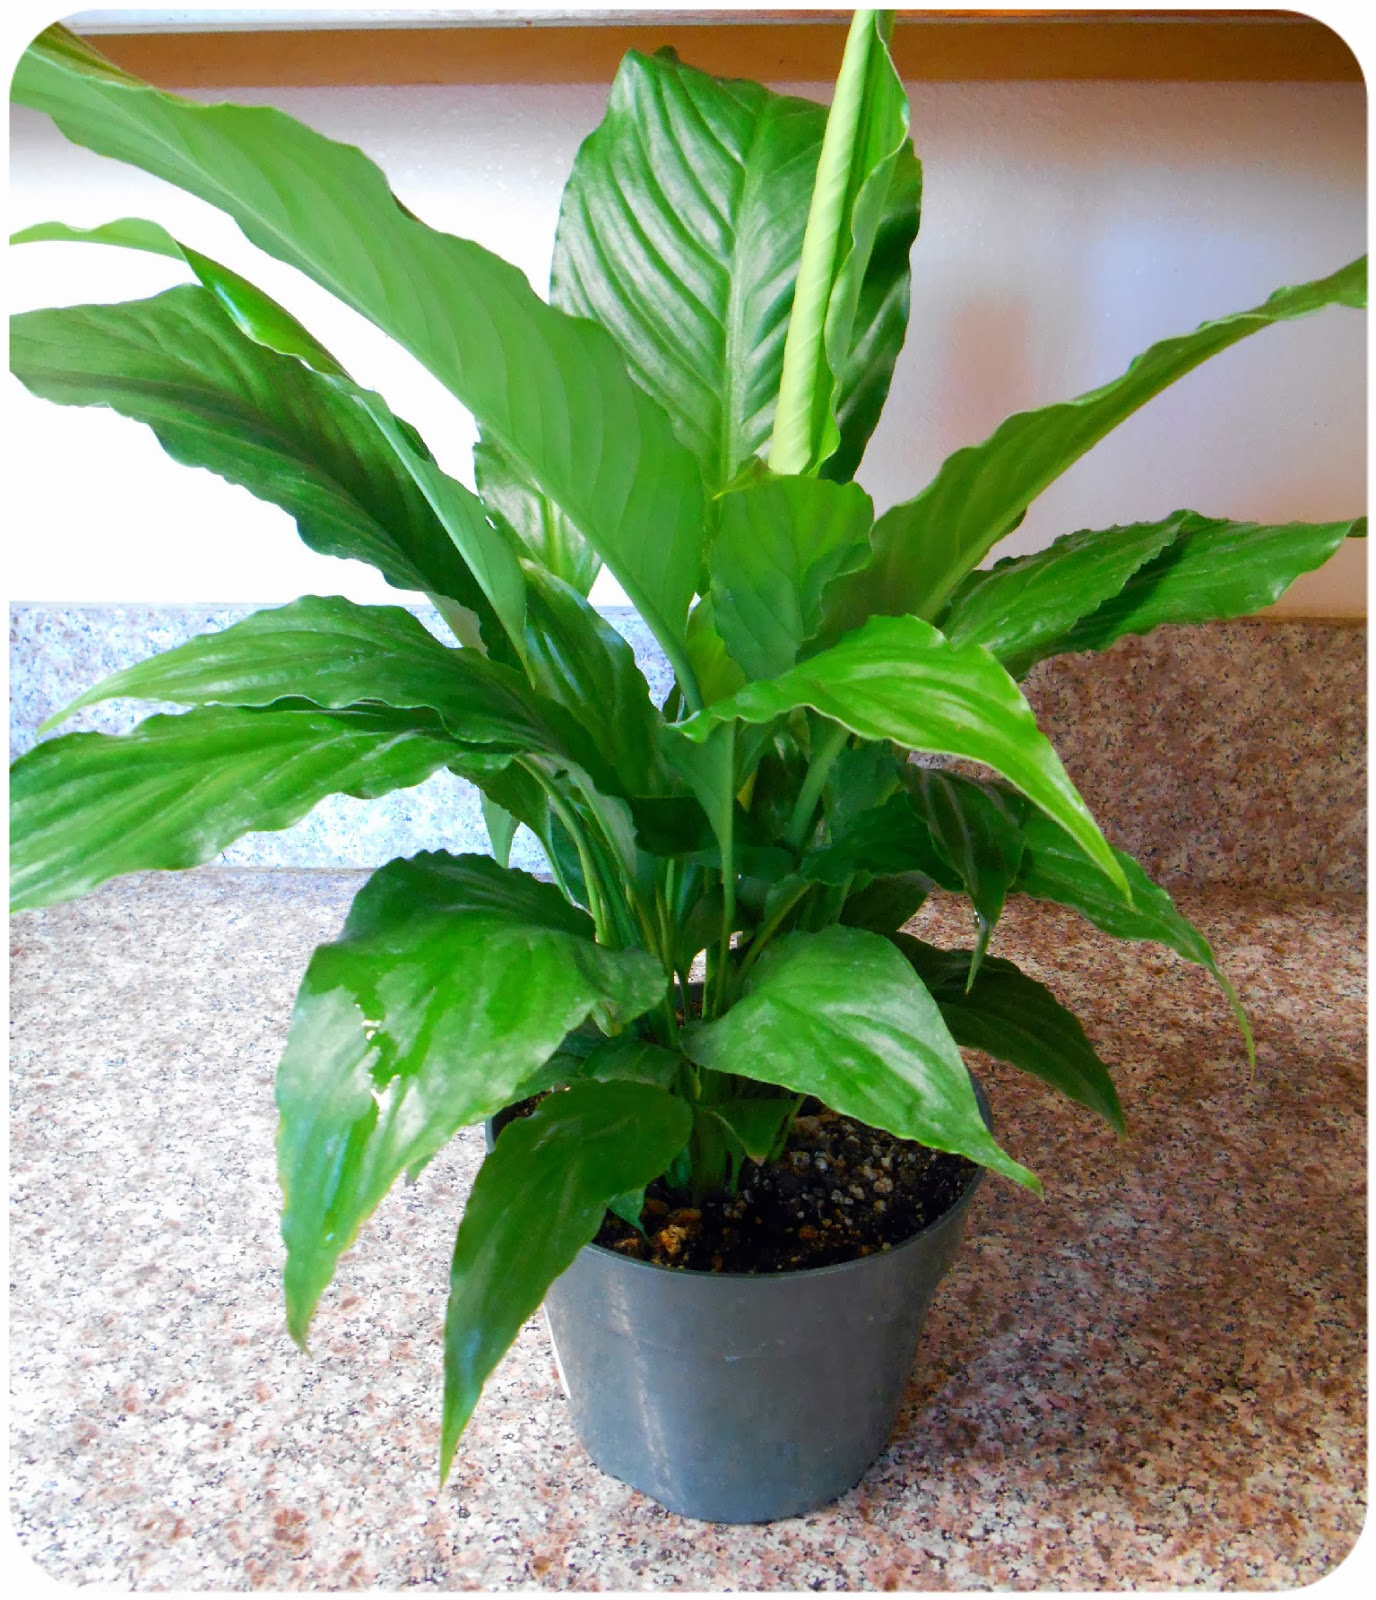 Maria sself chekmarev four ways to purify indoor air for Buy air purifying plants